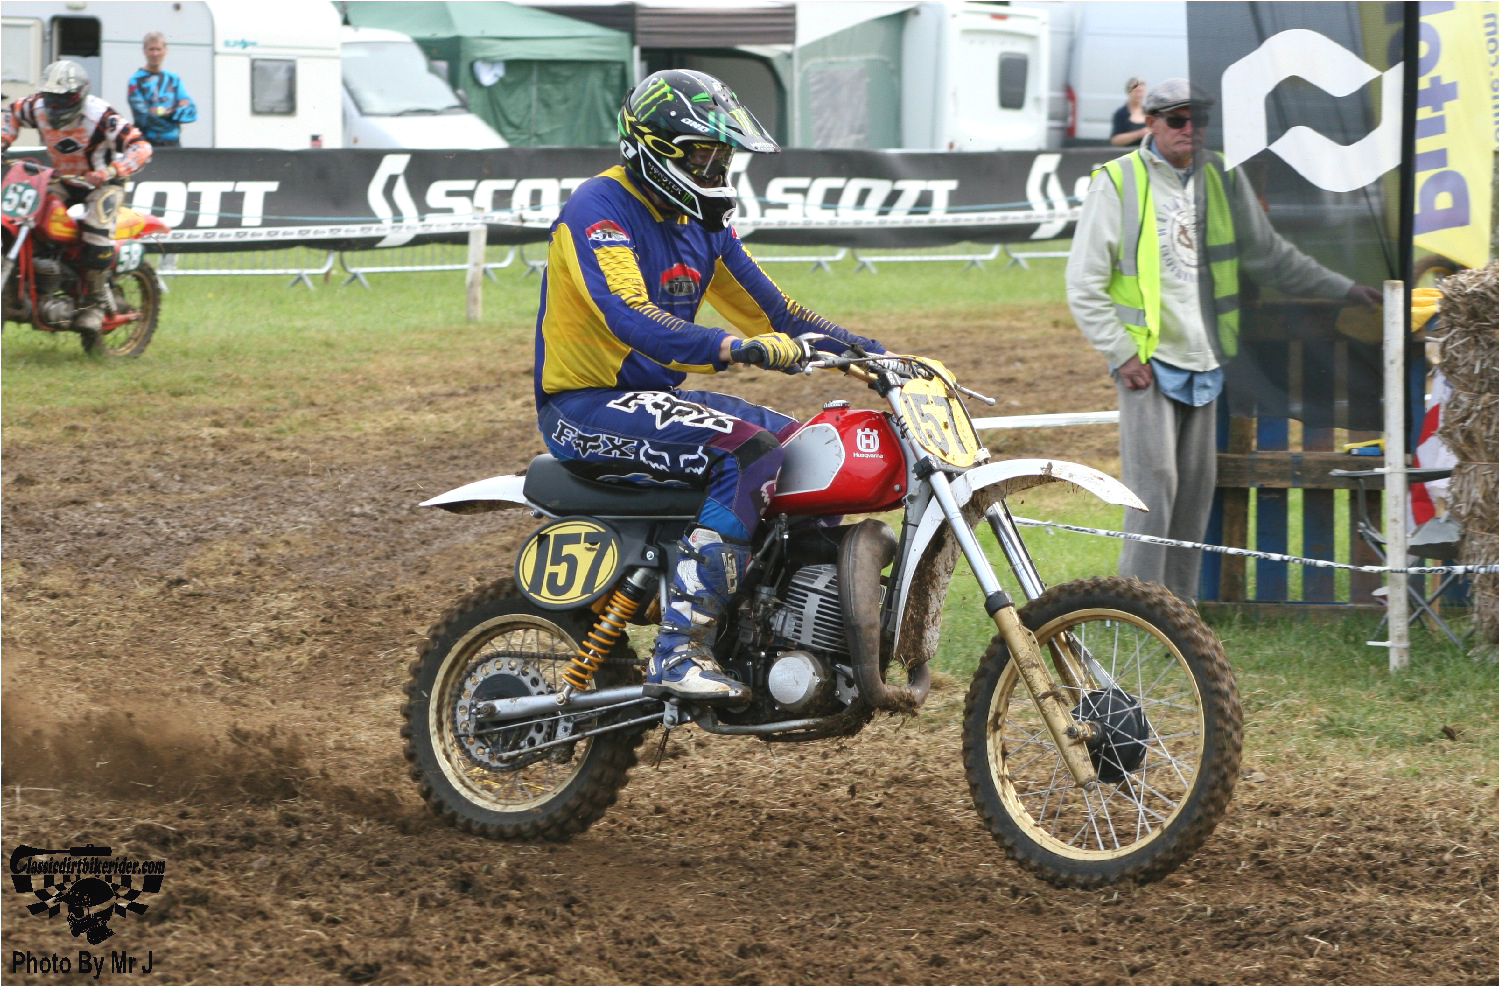 king of the castle 2015 photos Farleigh Castle twinshock motocross classicdirtbikerider.com 133